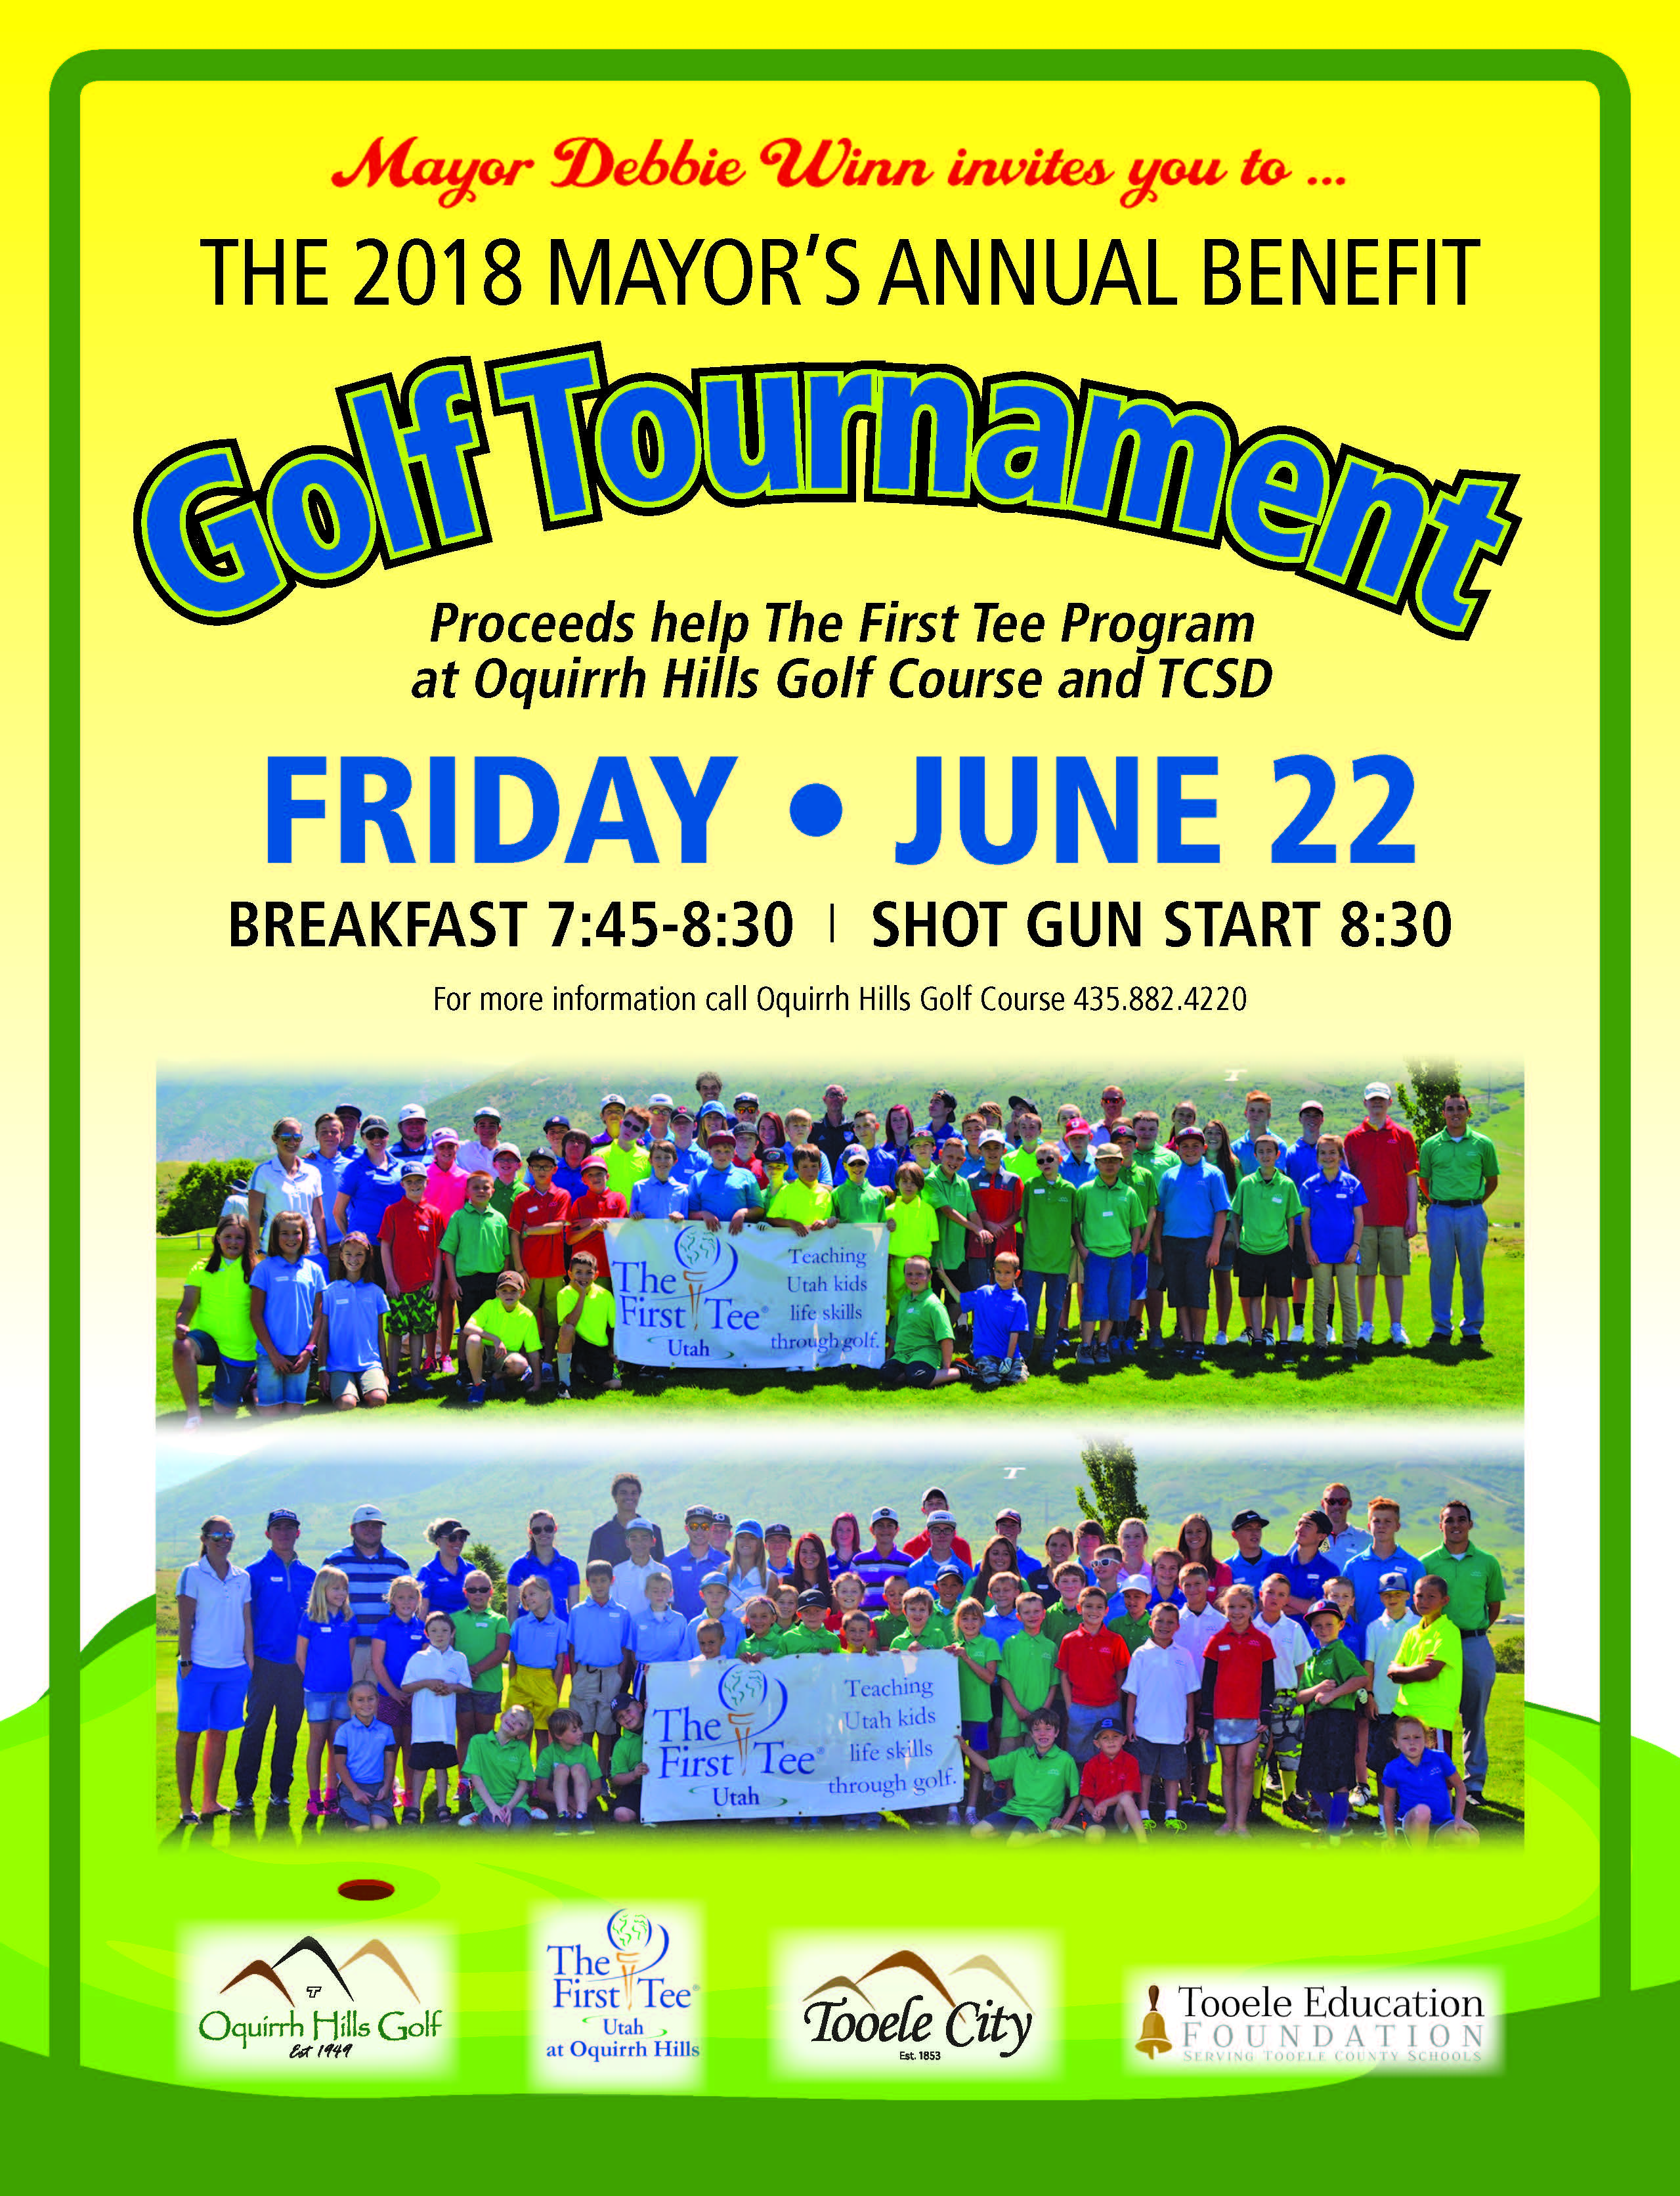 The Mayor's Annual Benefit Golf Tournament 2018 @ Oquirrh Hills Golf Course | Tooele | Utah | United States